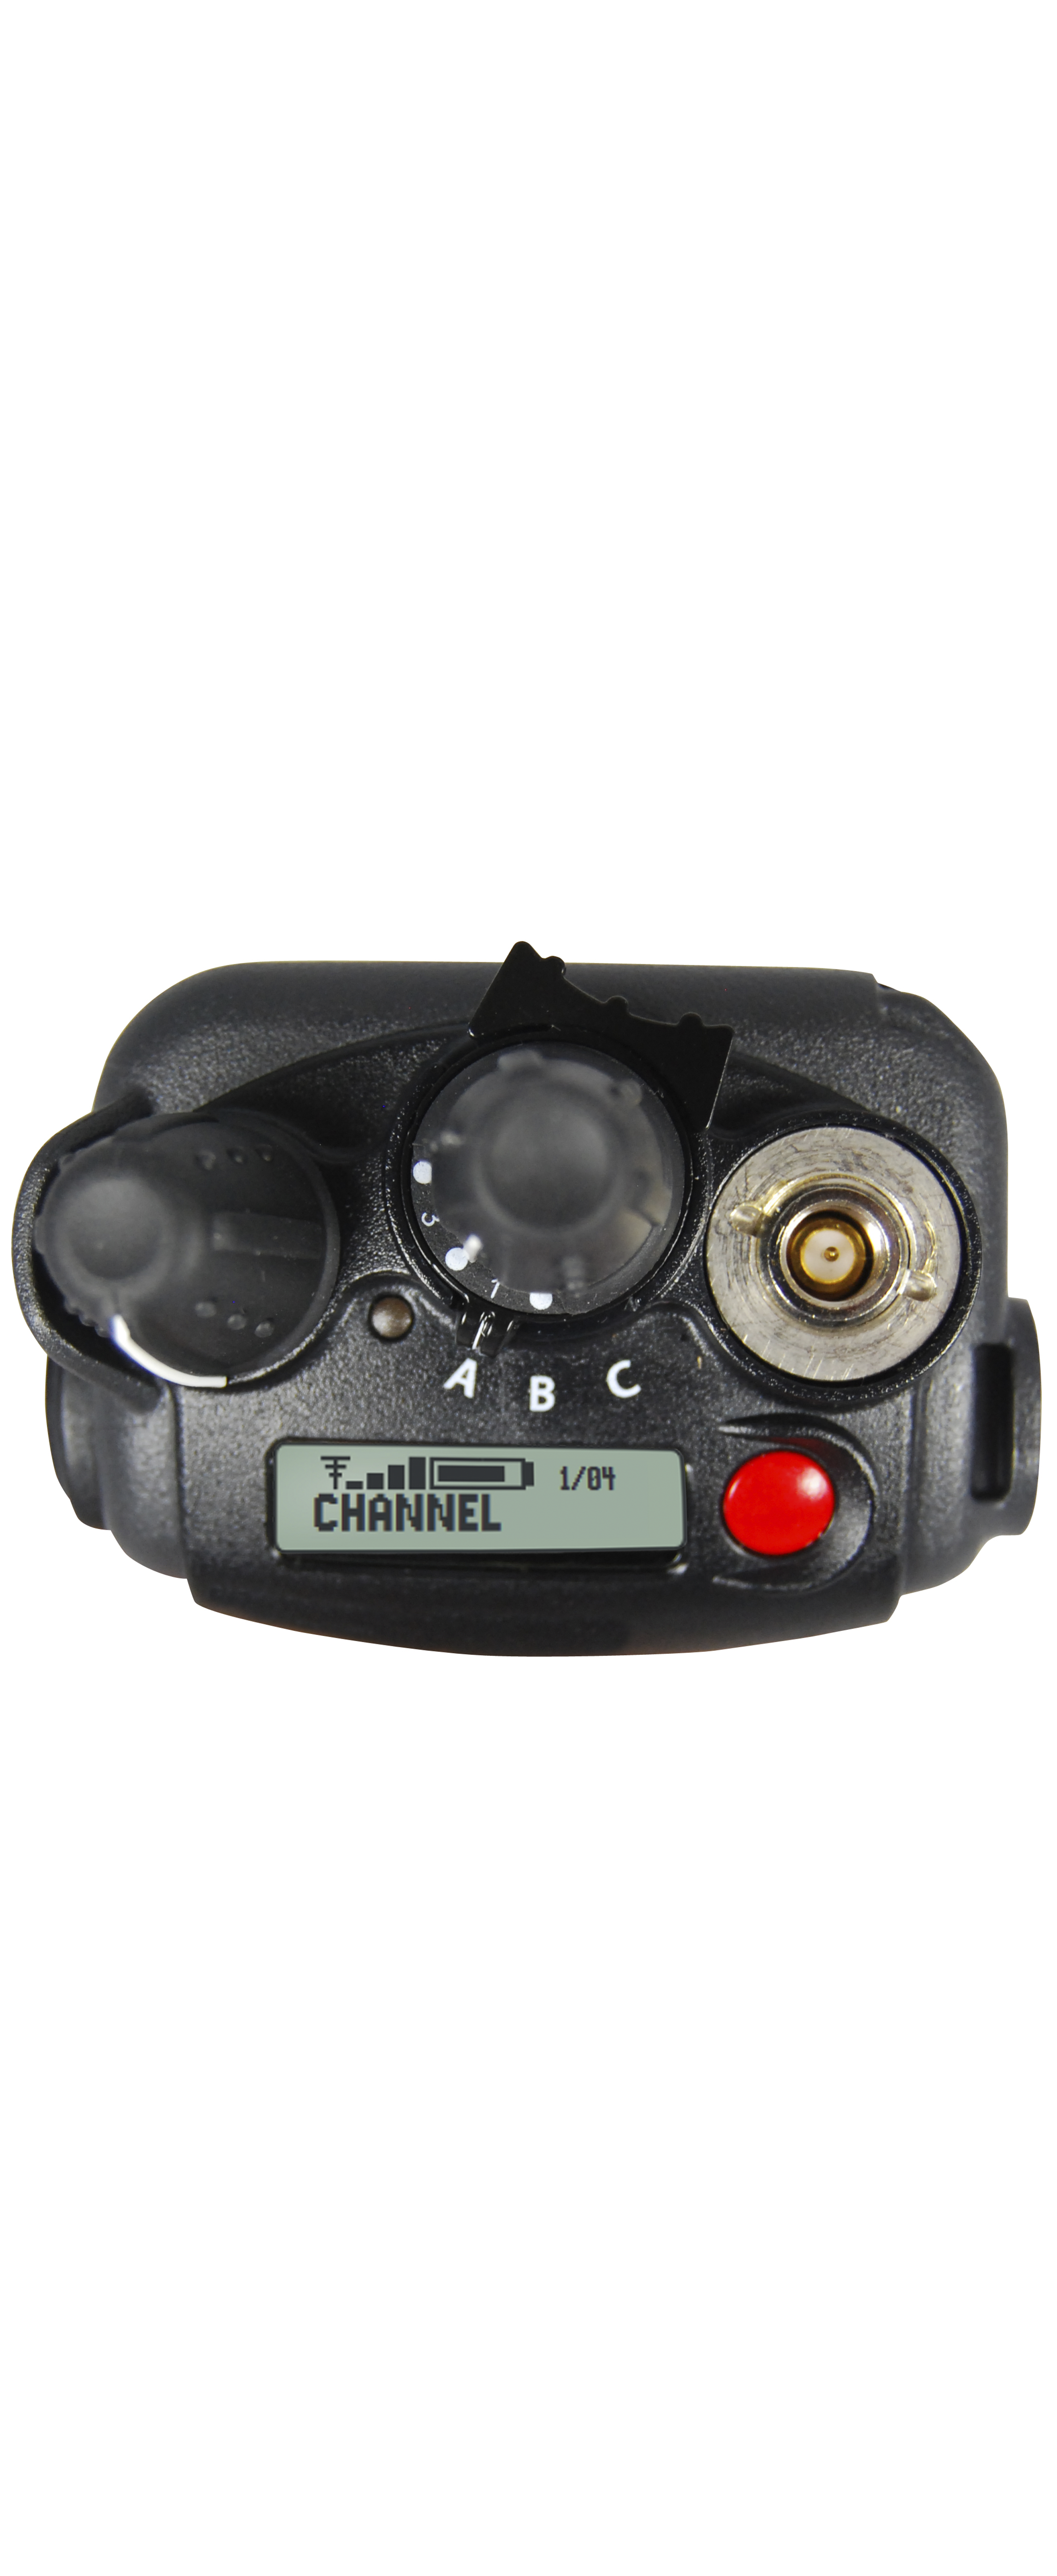 Black VP600 Portable Radios top view